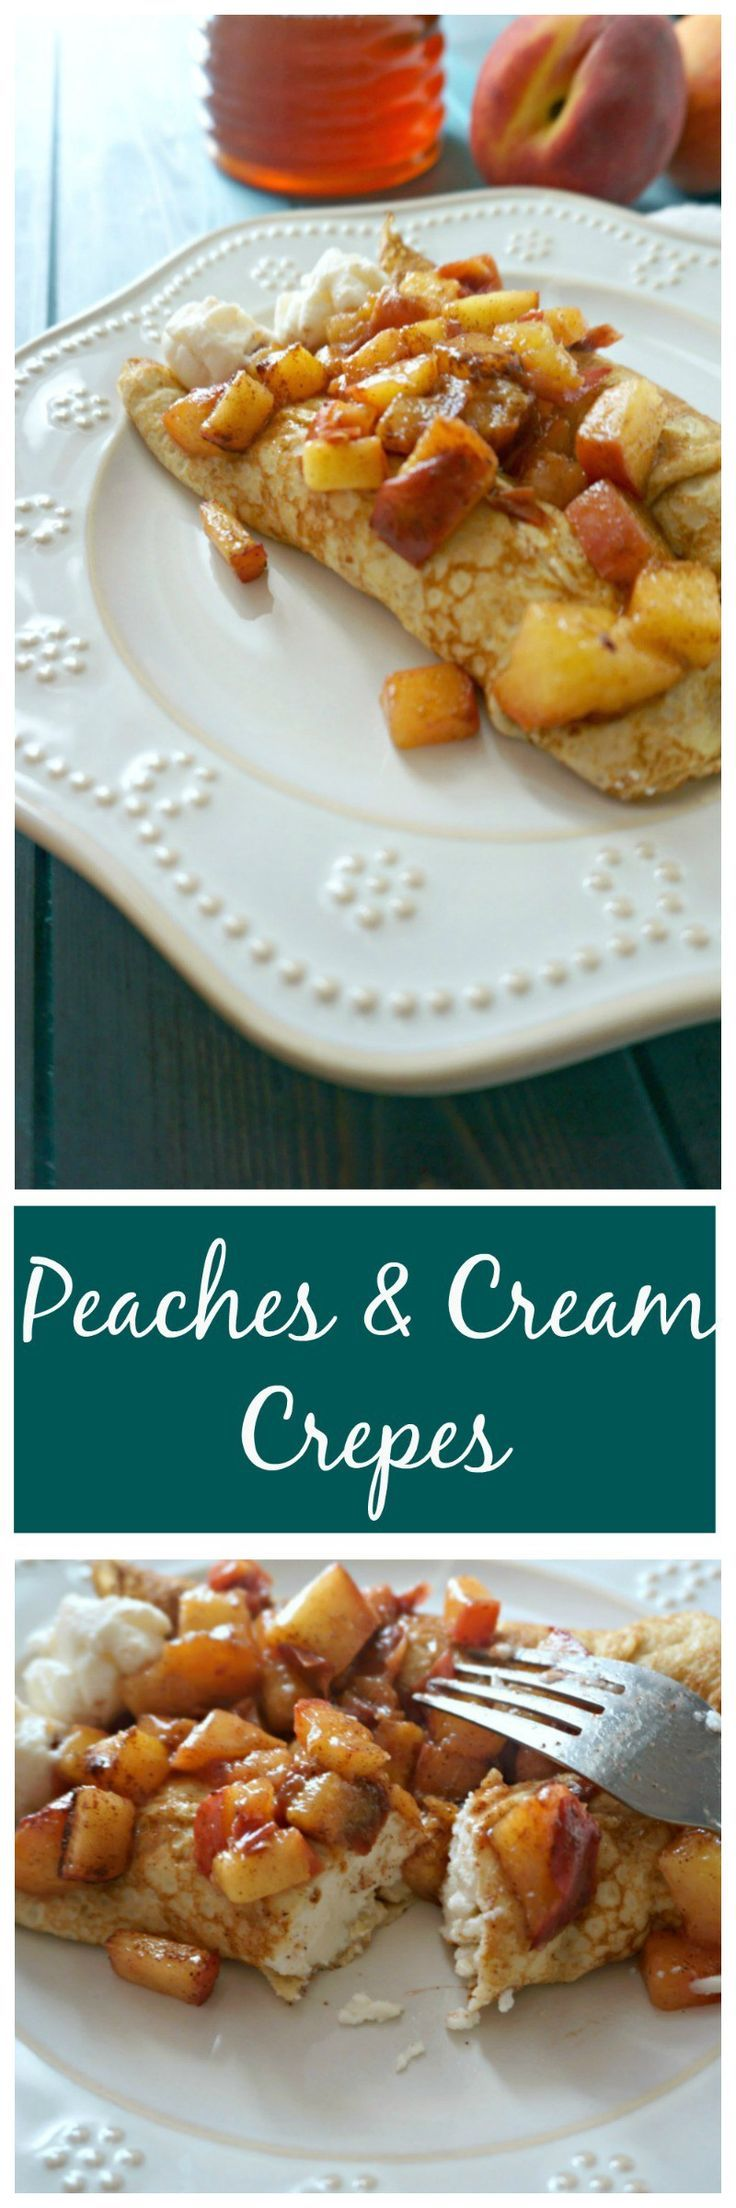 Peaches and Cream Crepes: Tender, whole wheat crepes are filled with a ...